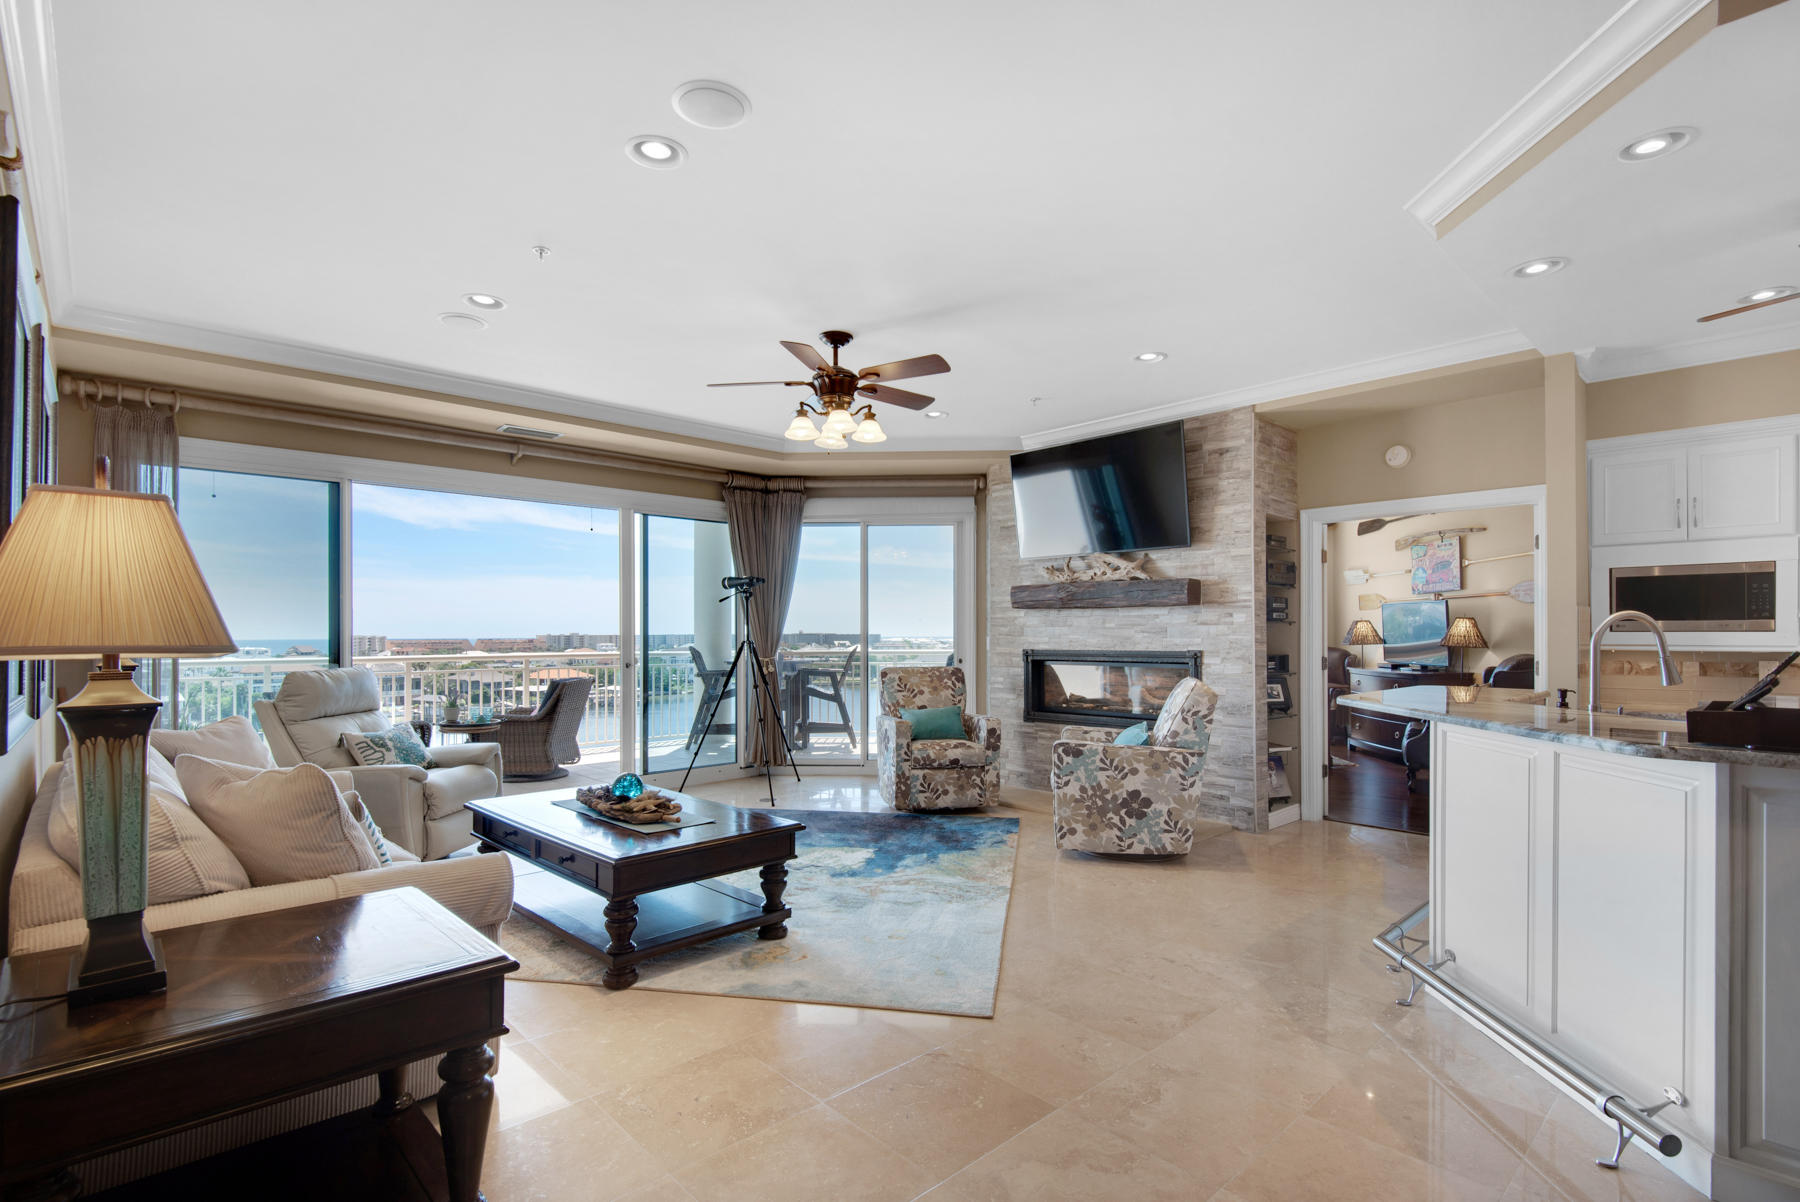 Enjoy Stunning Gulf and Harbor Views from this amazing 5th floor Harbor Front Condo. Look to the South and you will see the Harbor, Holiday Isle, and the Gulf of Mexico . To the West, enjoy the astonishing sunsets along with watching the excitement of the activities of the Destin Harbor. You will experience luxury living at its finest in this 3 bedroom/3 Bath condo at Grand Harbor. This spectacular condo is furnished and move in ready. Owner has paid special attention to the fine finishes and decorative features  throughout the unit.  Custom window treatments, remote controlled shades in master bedrooms and guest bedroom (currently used as an office), both with spectacular views.  Grand Harbor amenities include  pool, workout facility, amenity room for your extra guests. Grand Harbor is in the heart of Destin close to shopping, dining, championship golfing, boating, churches, and of course the  emerald green waters and white sands of the Gulf. All dimensions to be verified by Buyer.